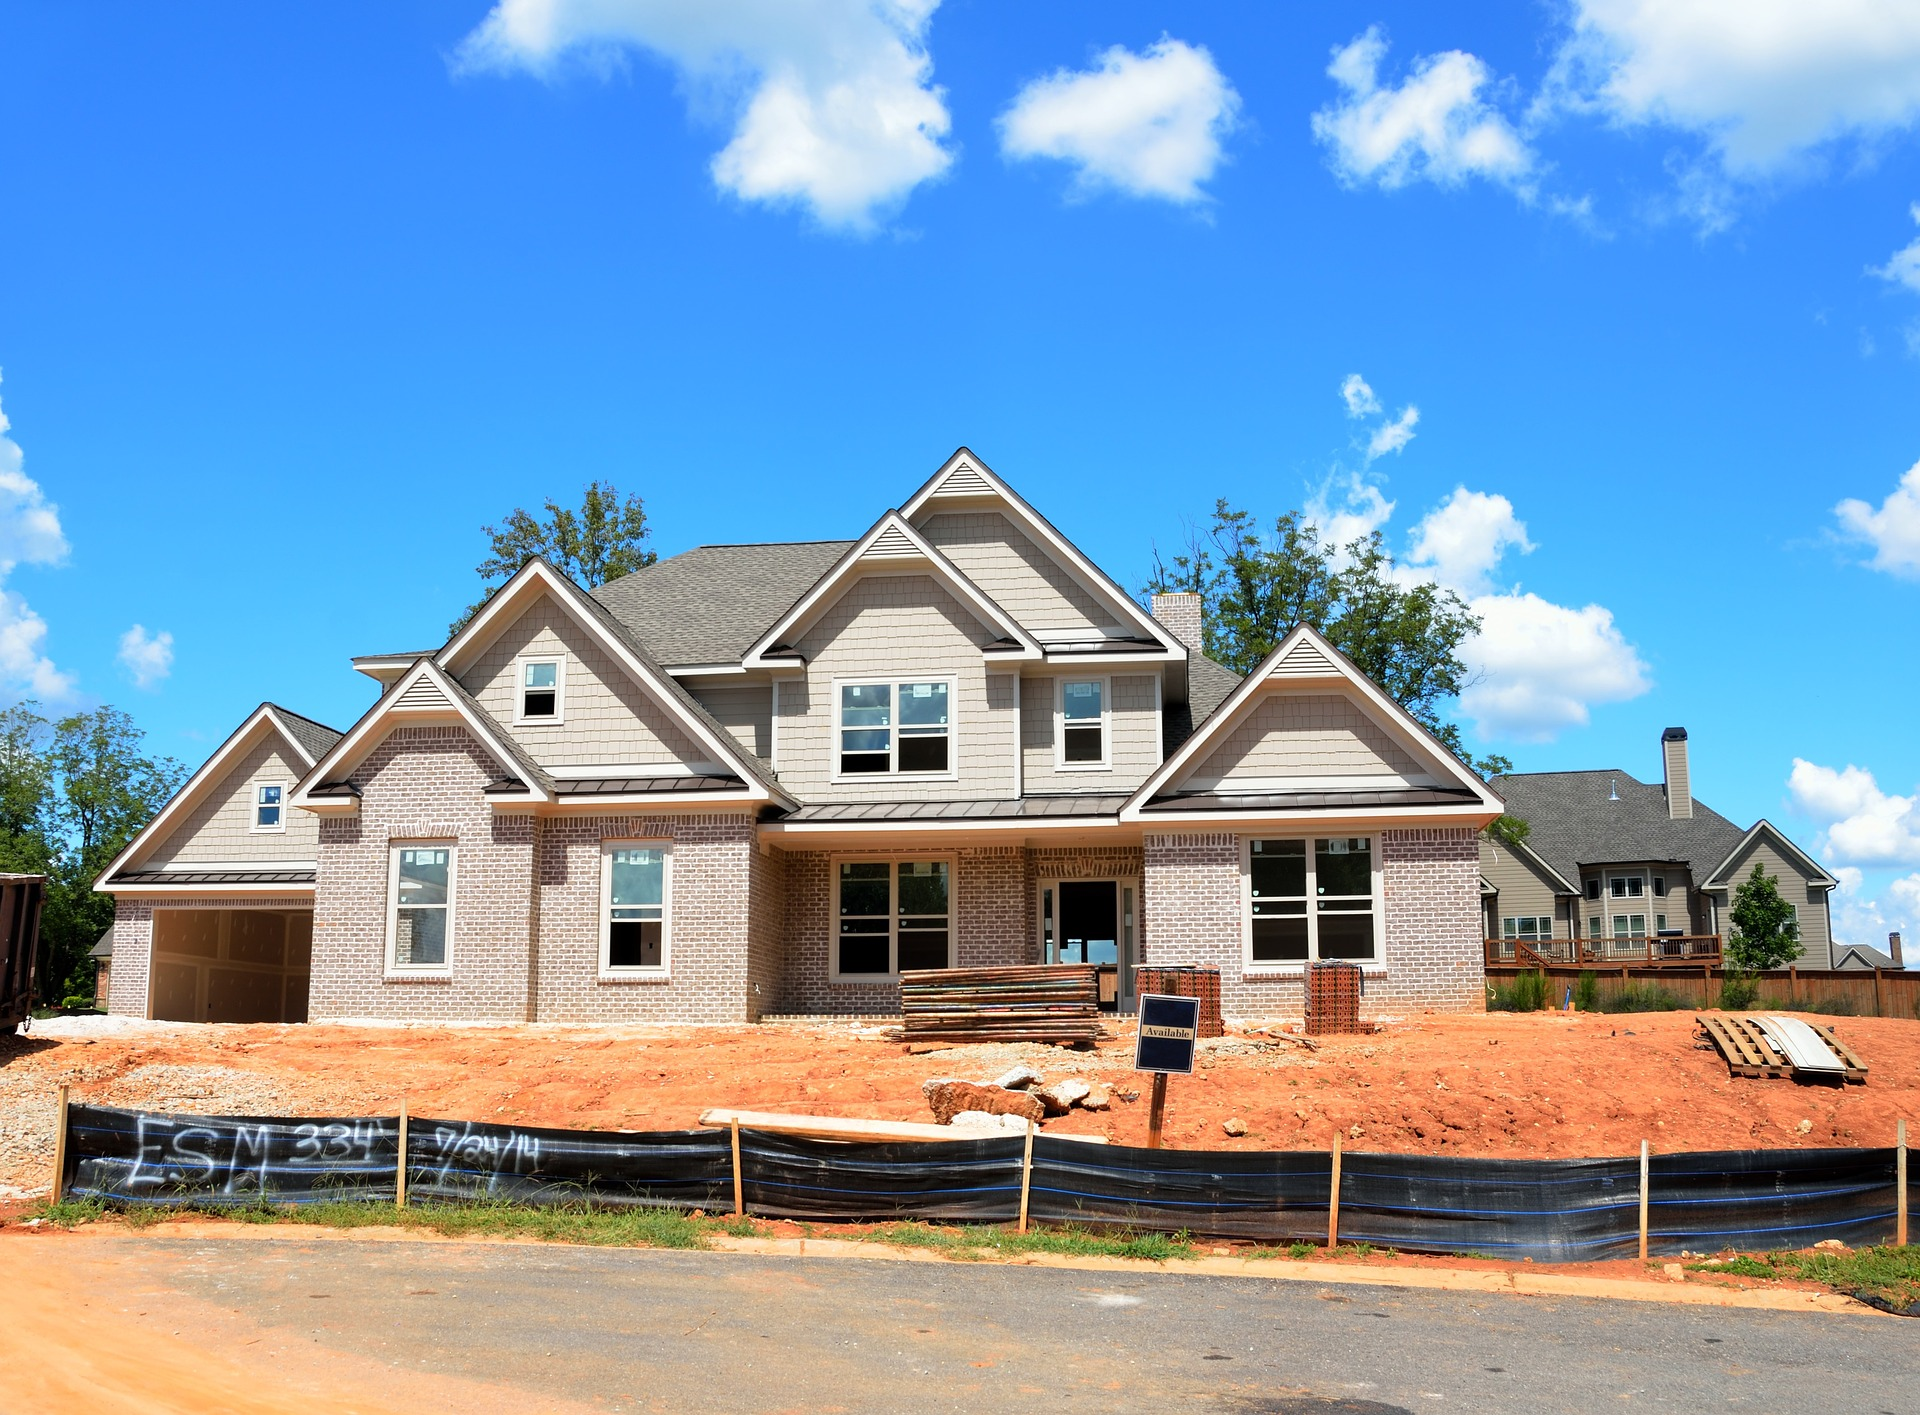 large new construction home in subdivision